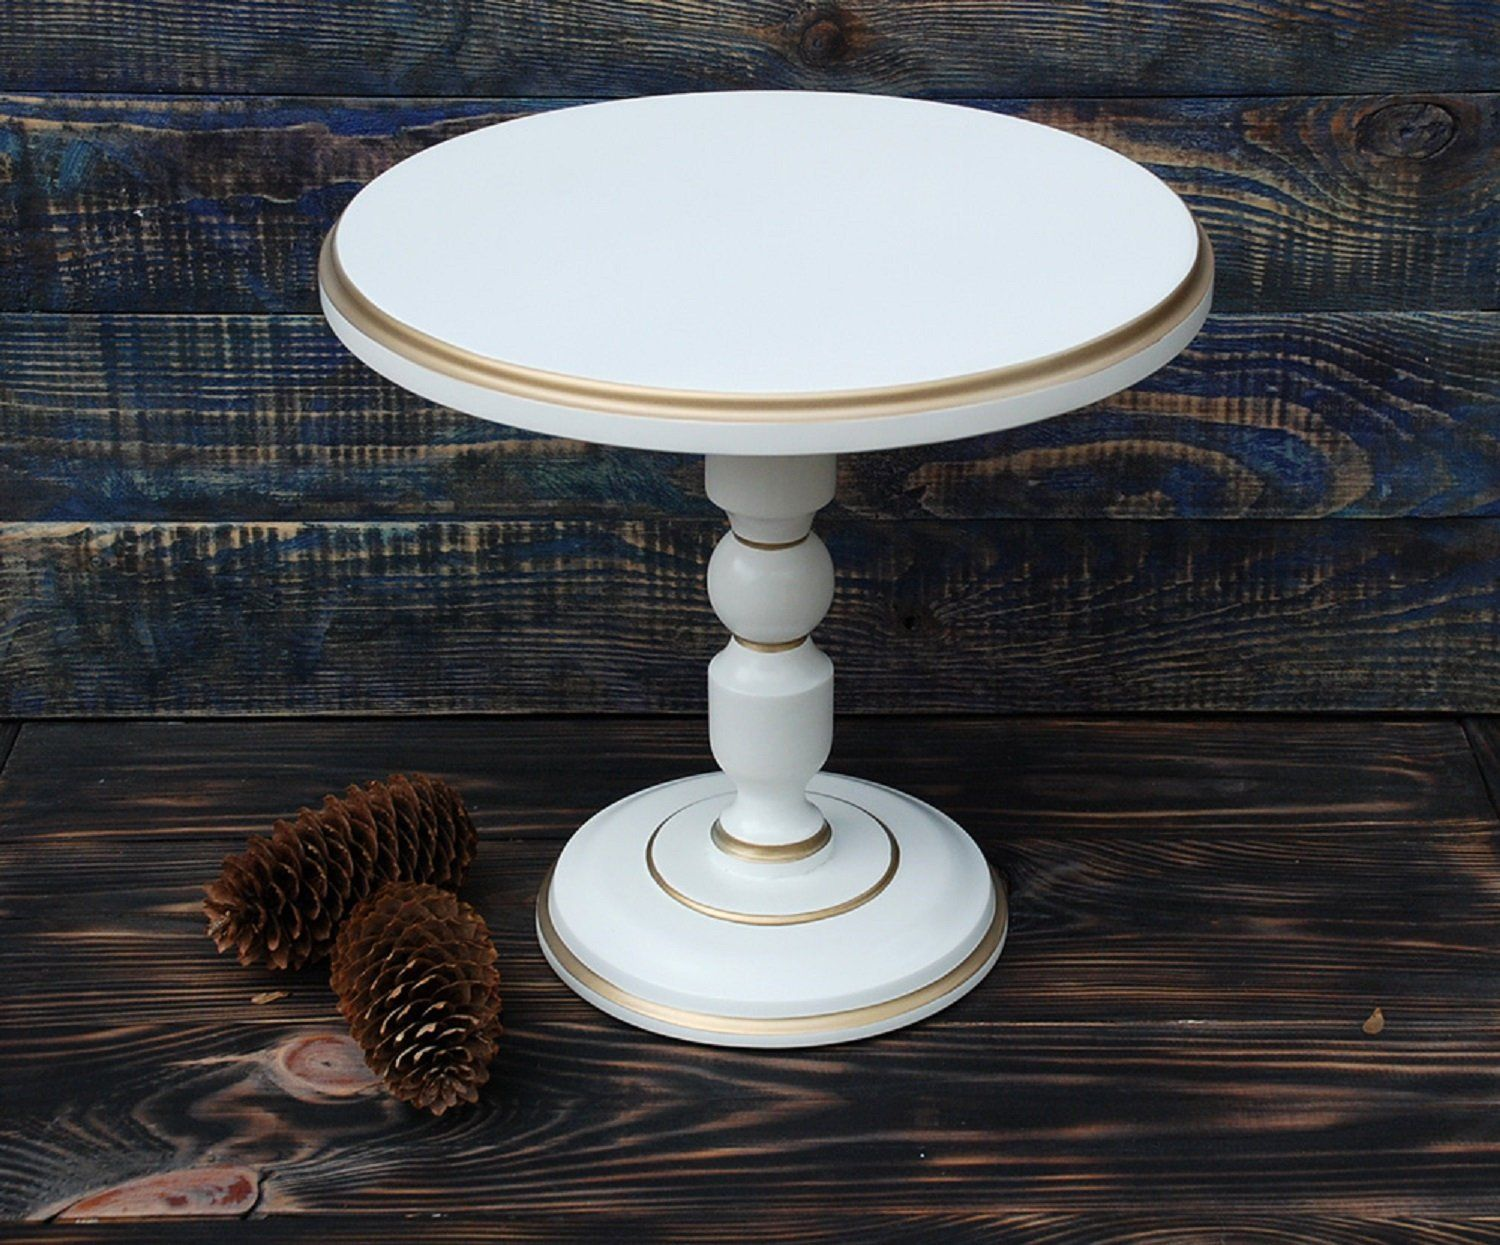 Ready To Ship 12 Inches Custom Cake Stand Royal Wooden Etsy In 2020 Wooden Cake Stands Wooden Cake Pedestal Wedding Cake Stand White